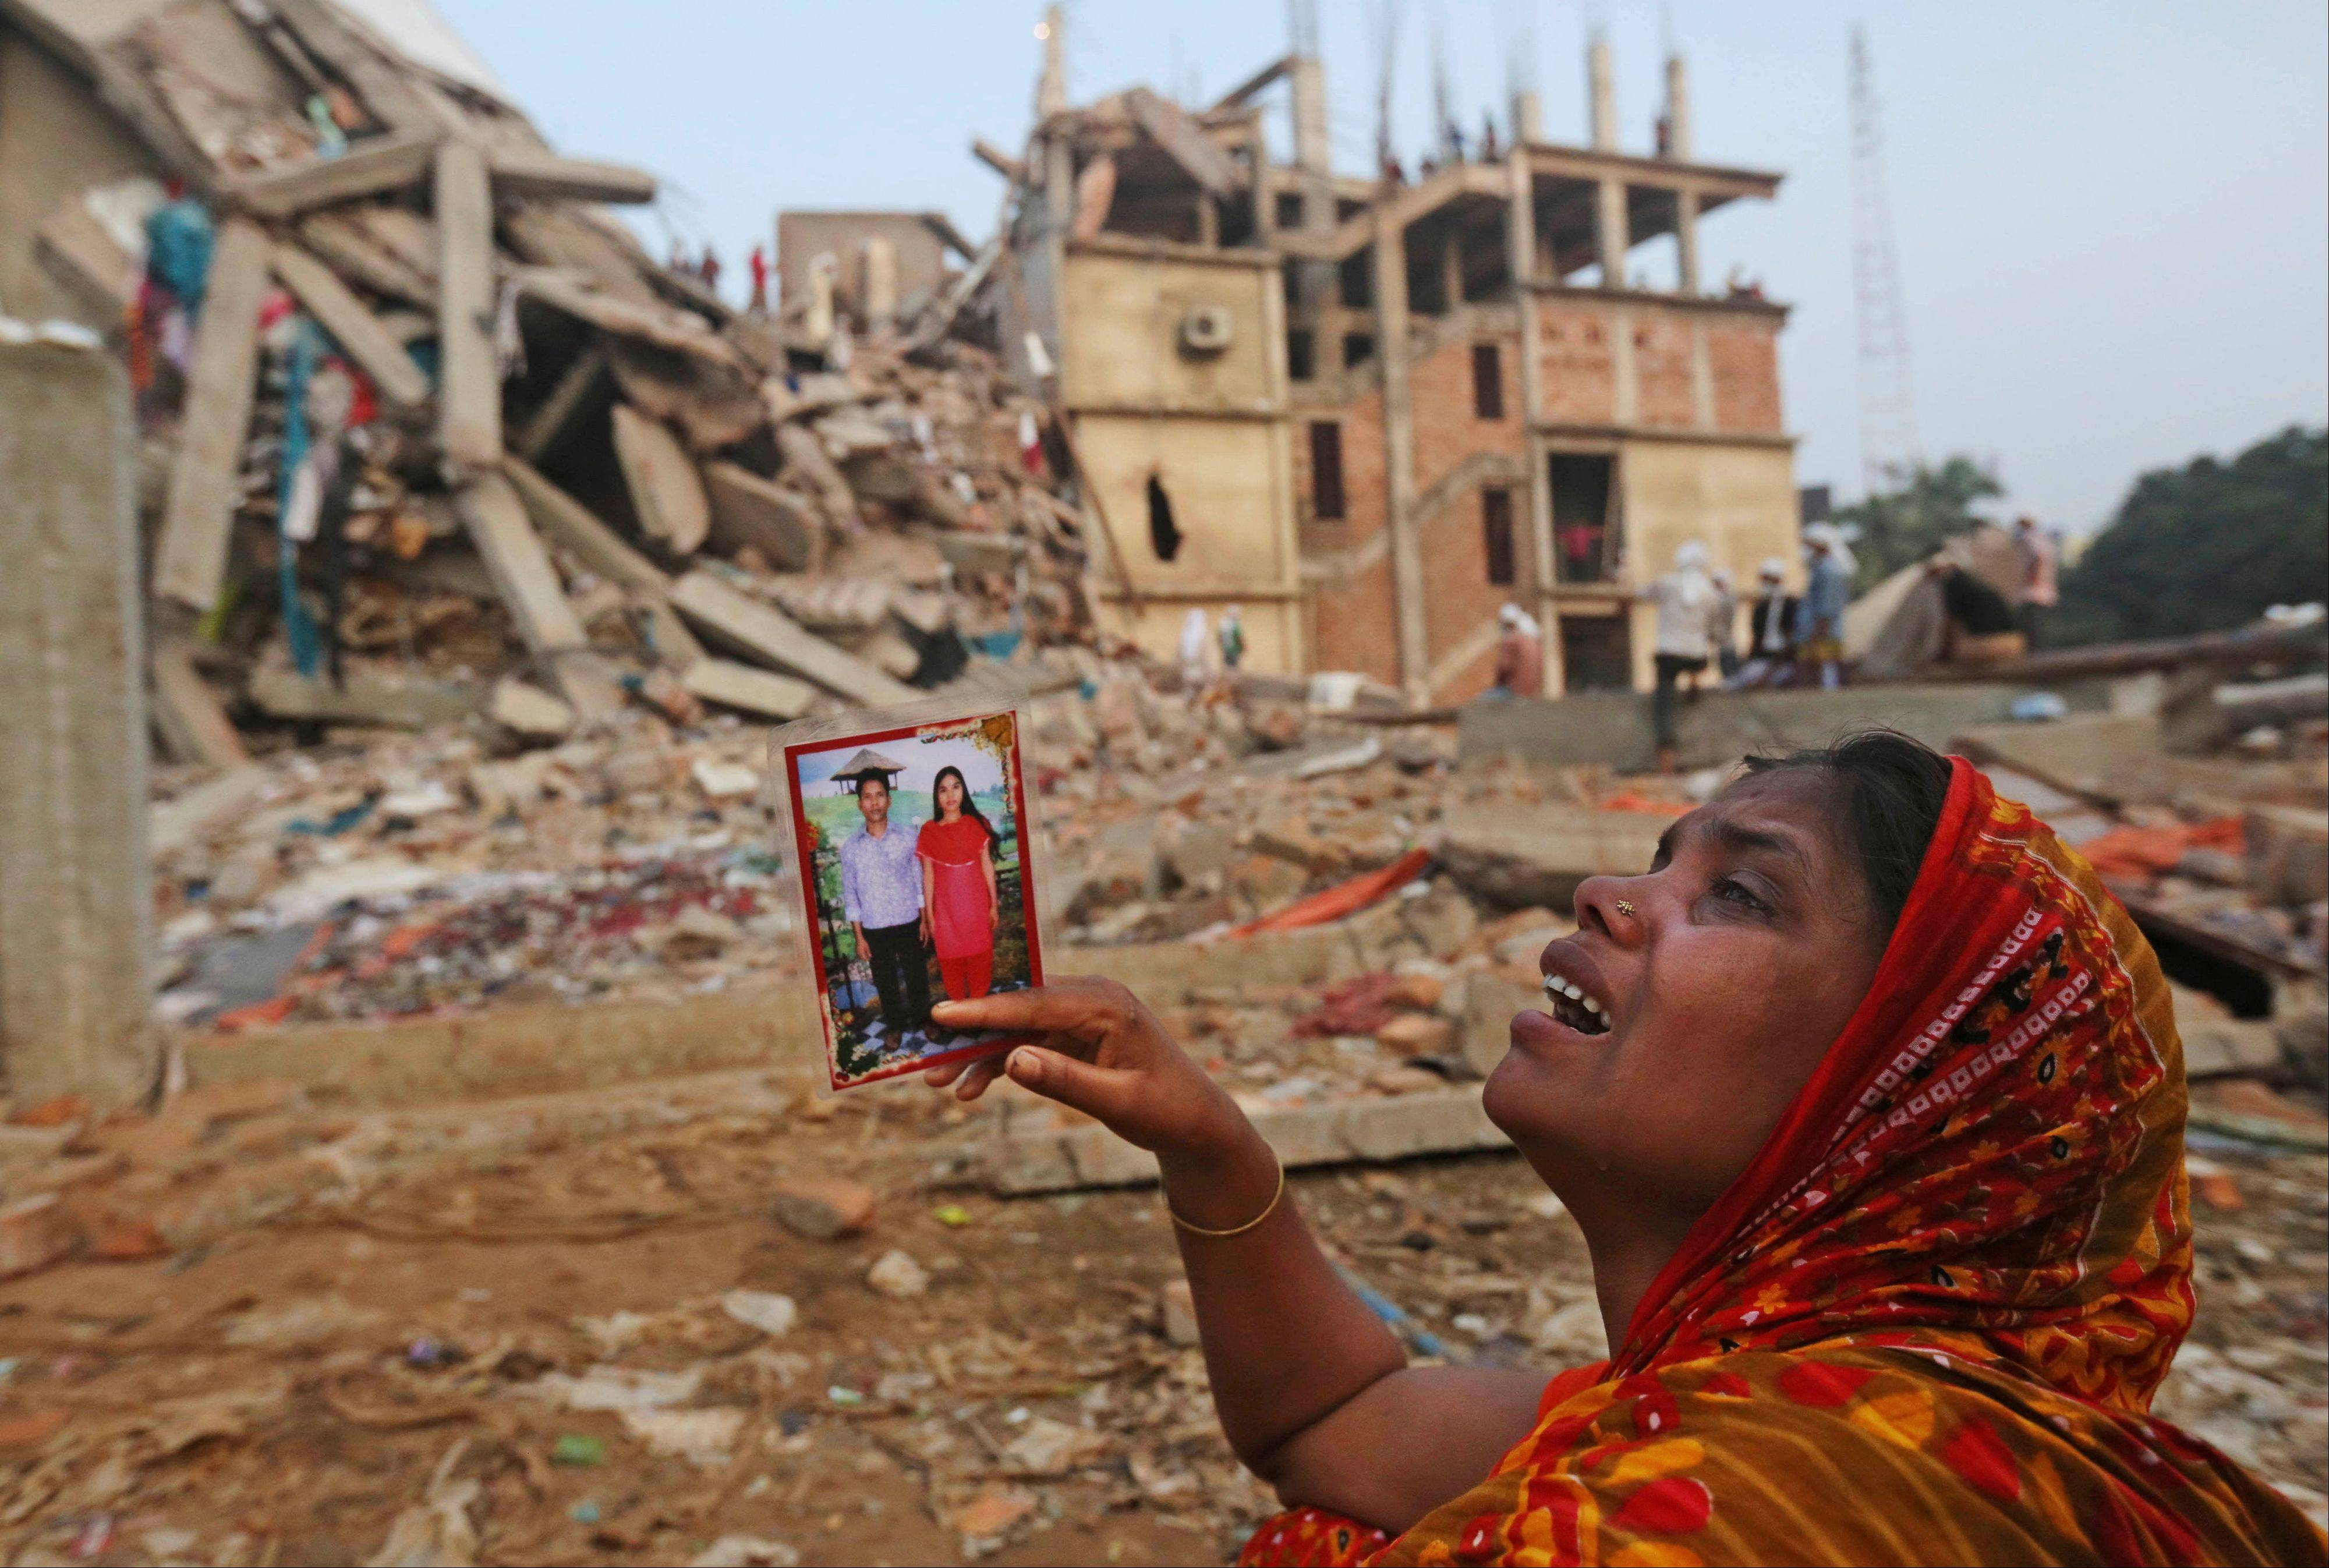 A Bangladeshi woman weeps as she holds a picture of her and her missing husband as she waits at the site of a building that collapsed Wednesday in Savar, near Dhaka, Bangladesh, Friday, April 26, 2013. The death toll reached hundreds of people as rescuers continued to search for injured and missing, after a huge section of an eight-story building that housed several garment factories splintered into a pile of concrete.